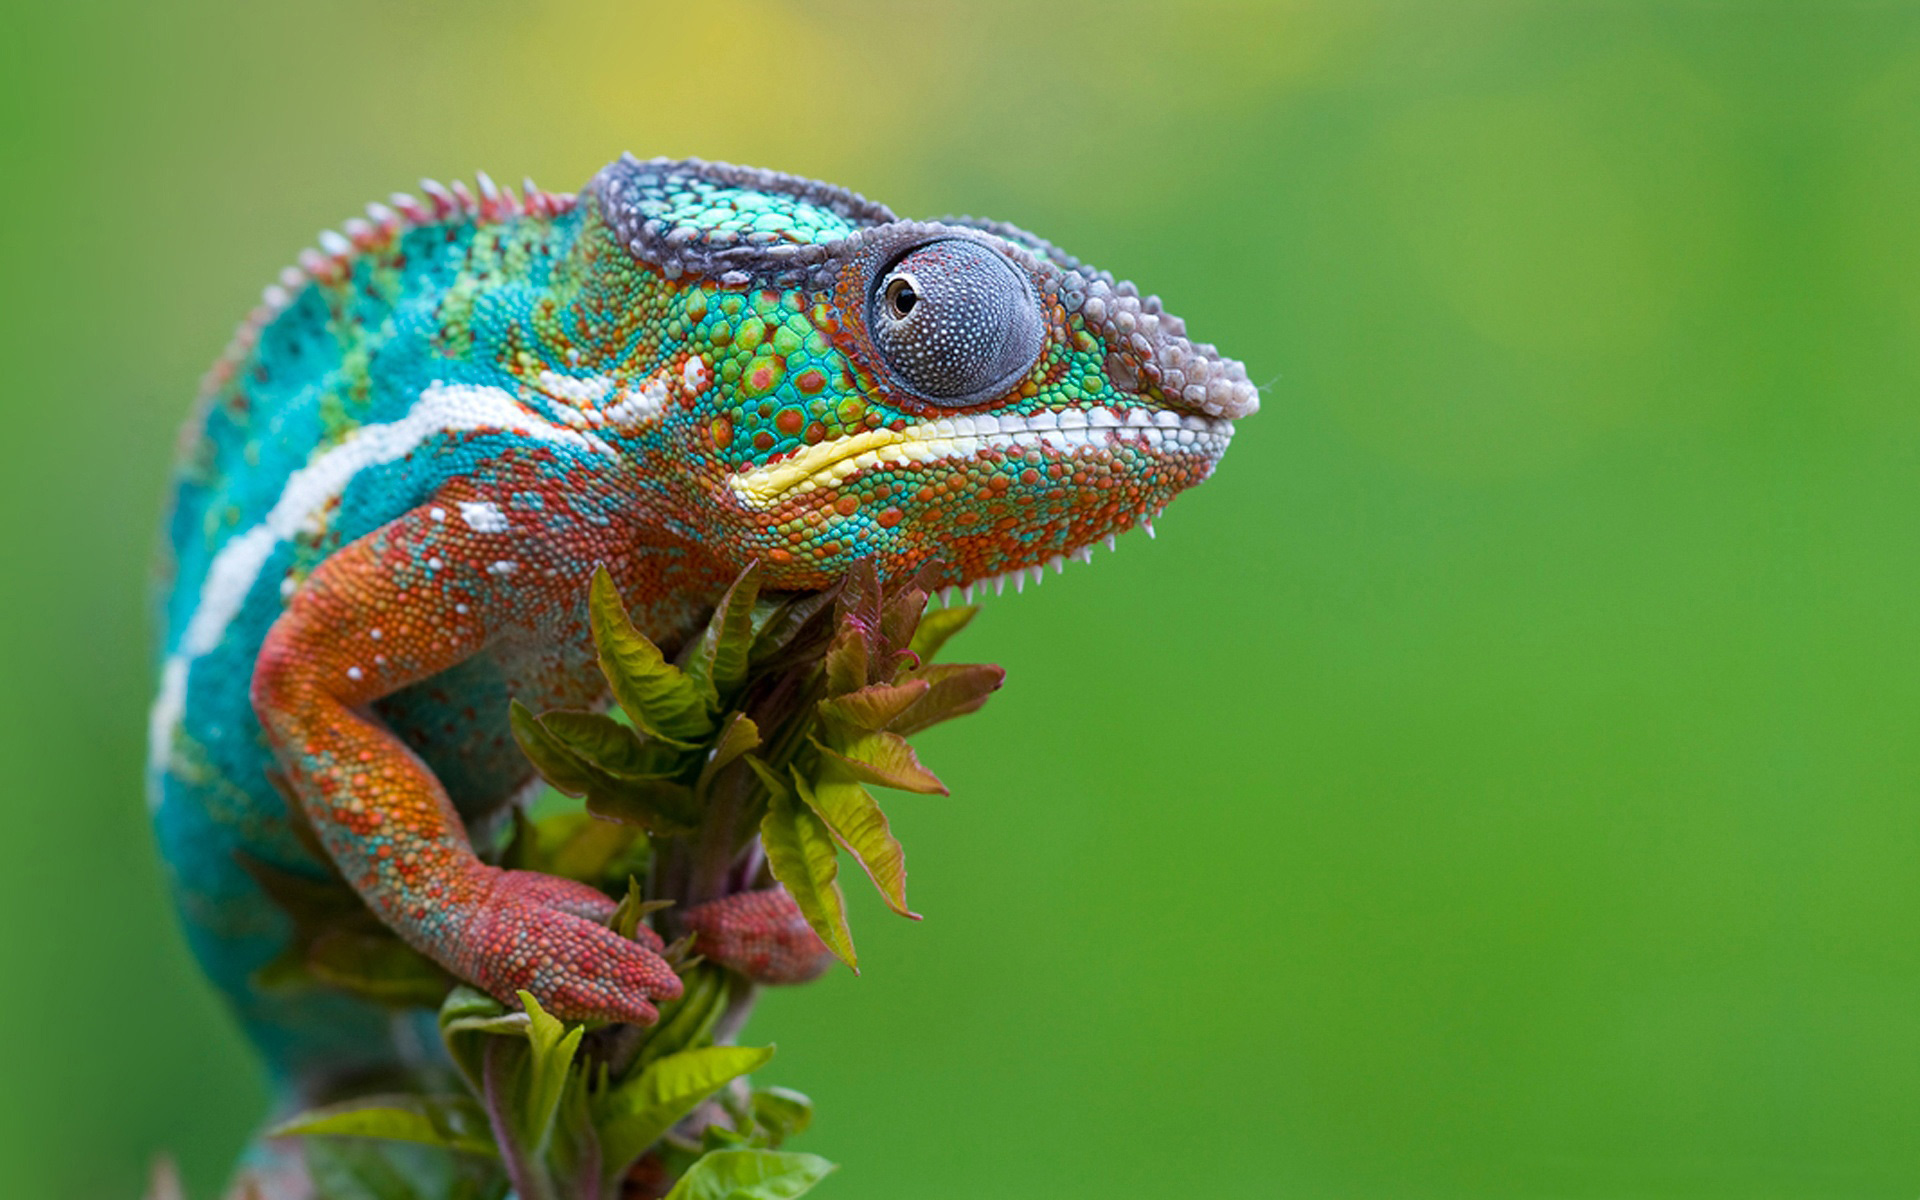 HD Lizard Wallpapers  Animals Library 1920x1200